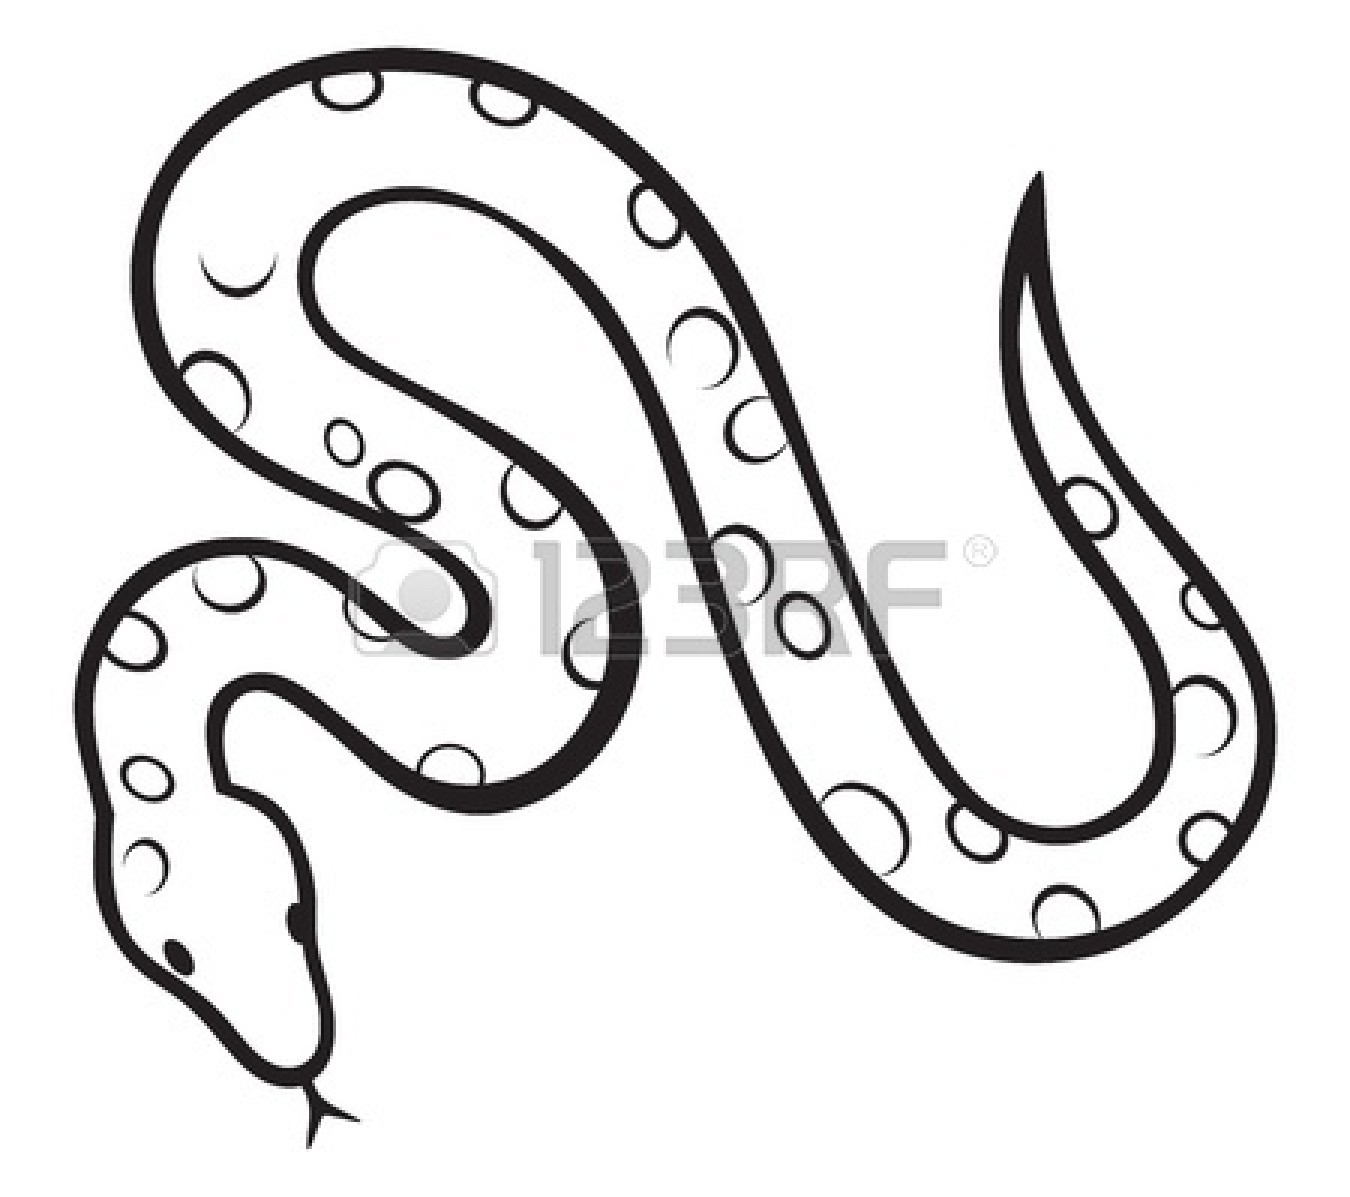 Drawn snake carton Clip Kids White Clipart And